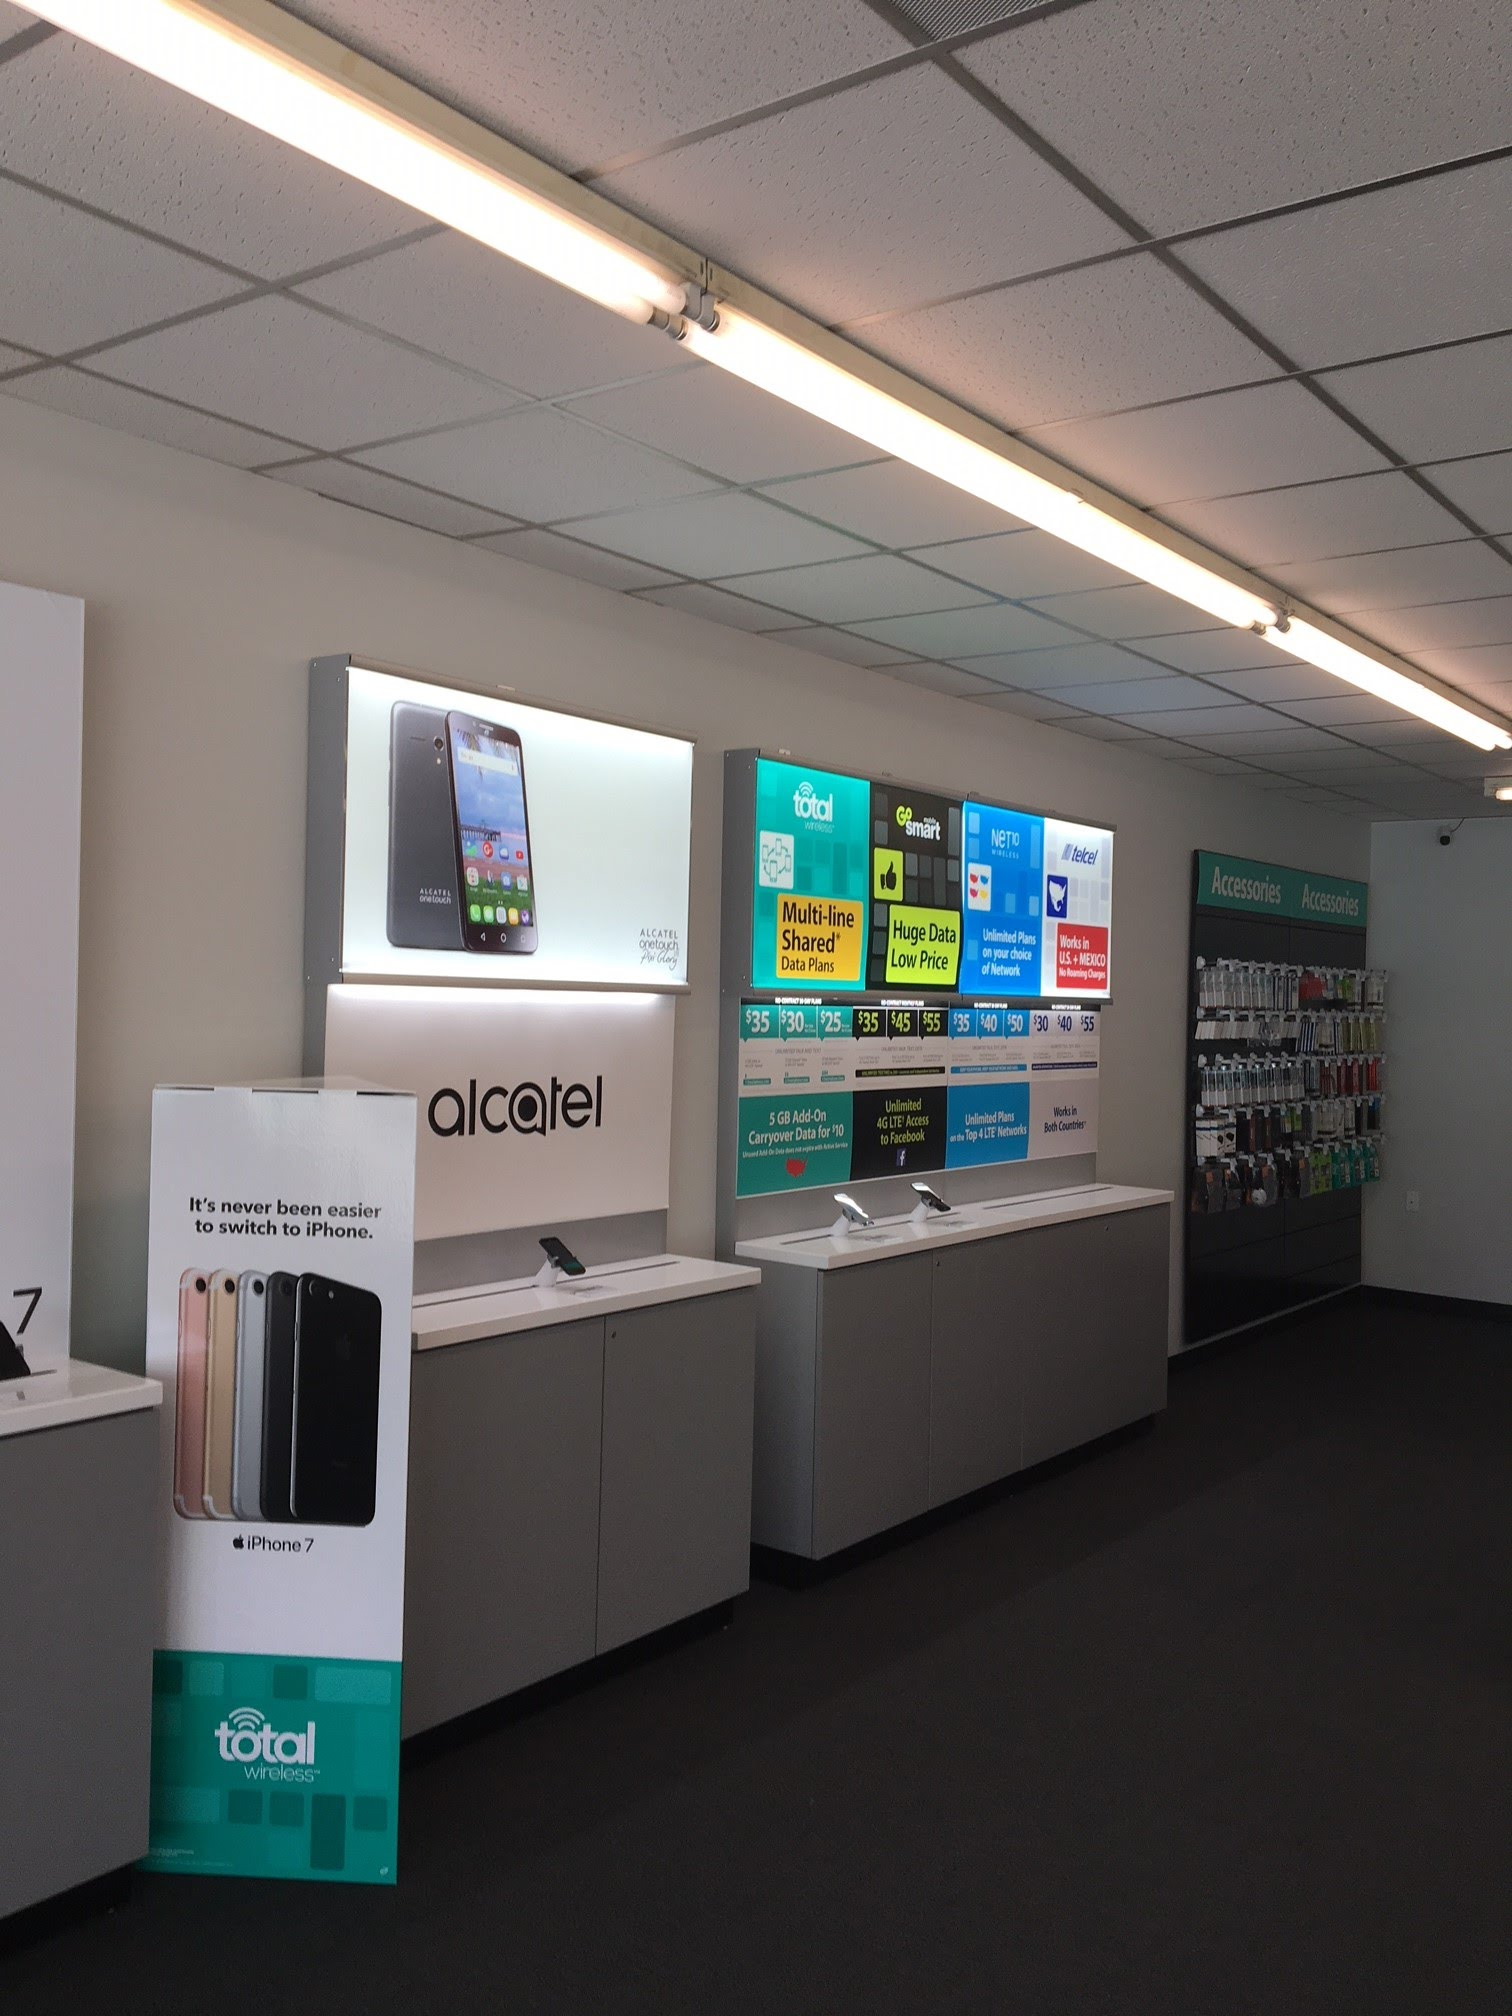 Total Wireless Store image 2